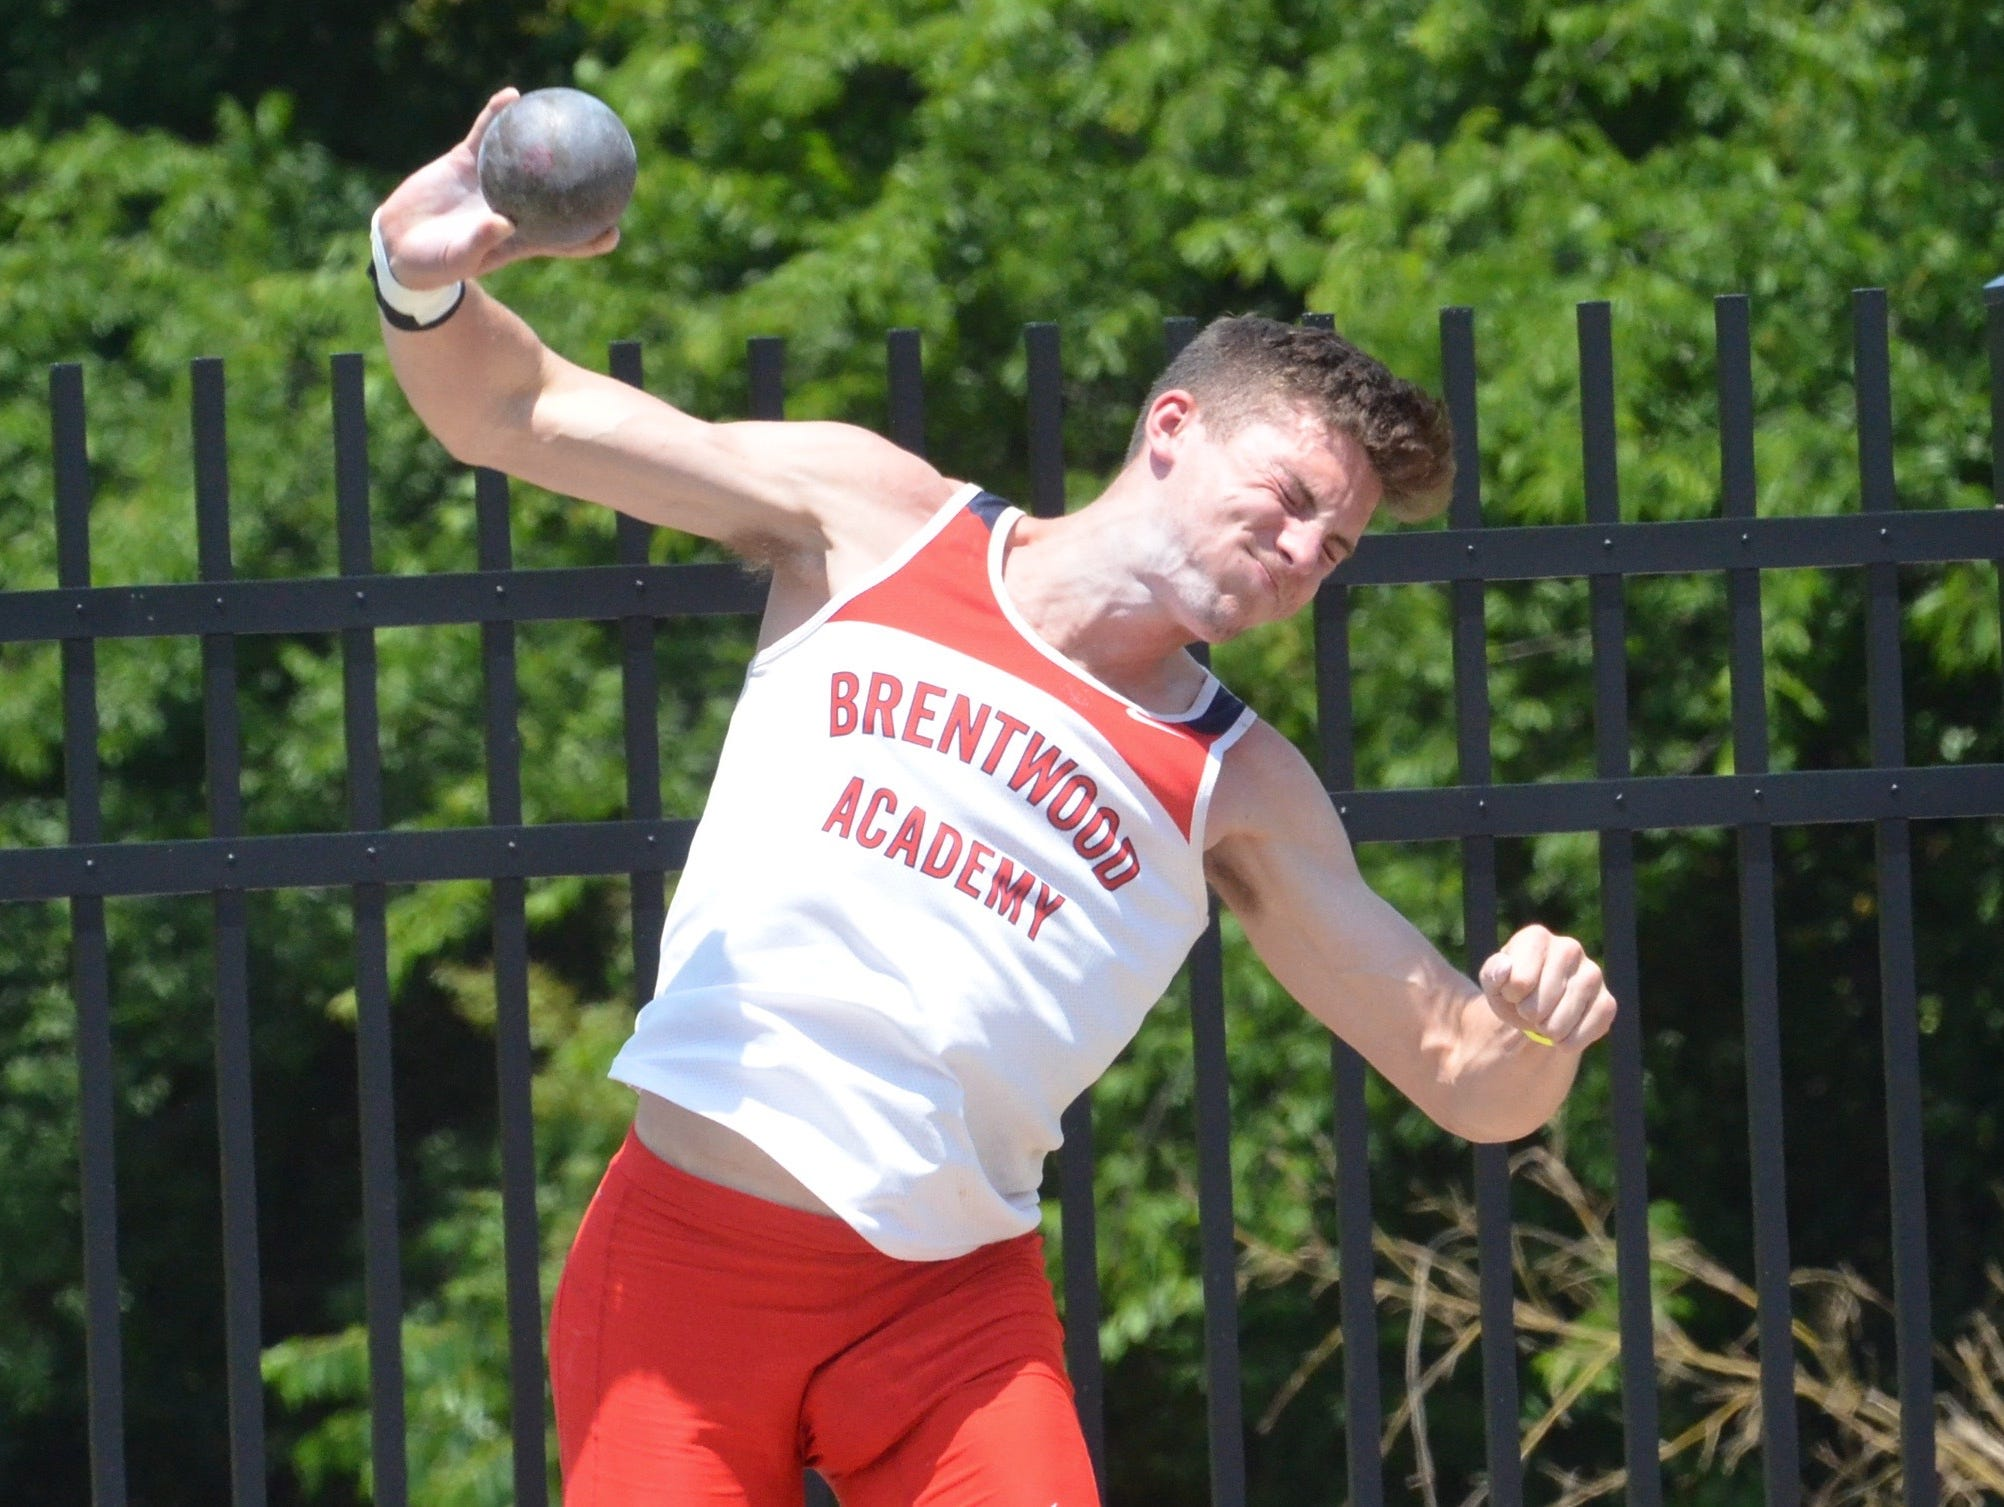 Brentwood Academy senior George Patrick won his second consecutive Division II decathlon championship on Tuesday at MTSU's Dean A. Hayes Staidum.